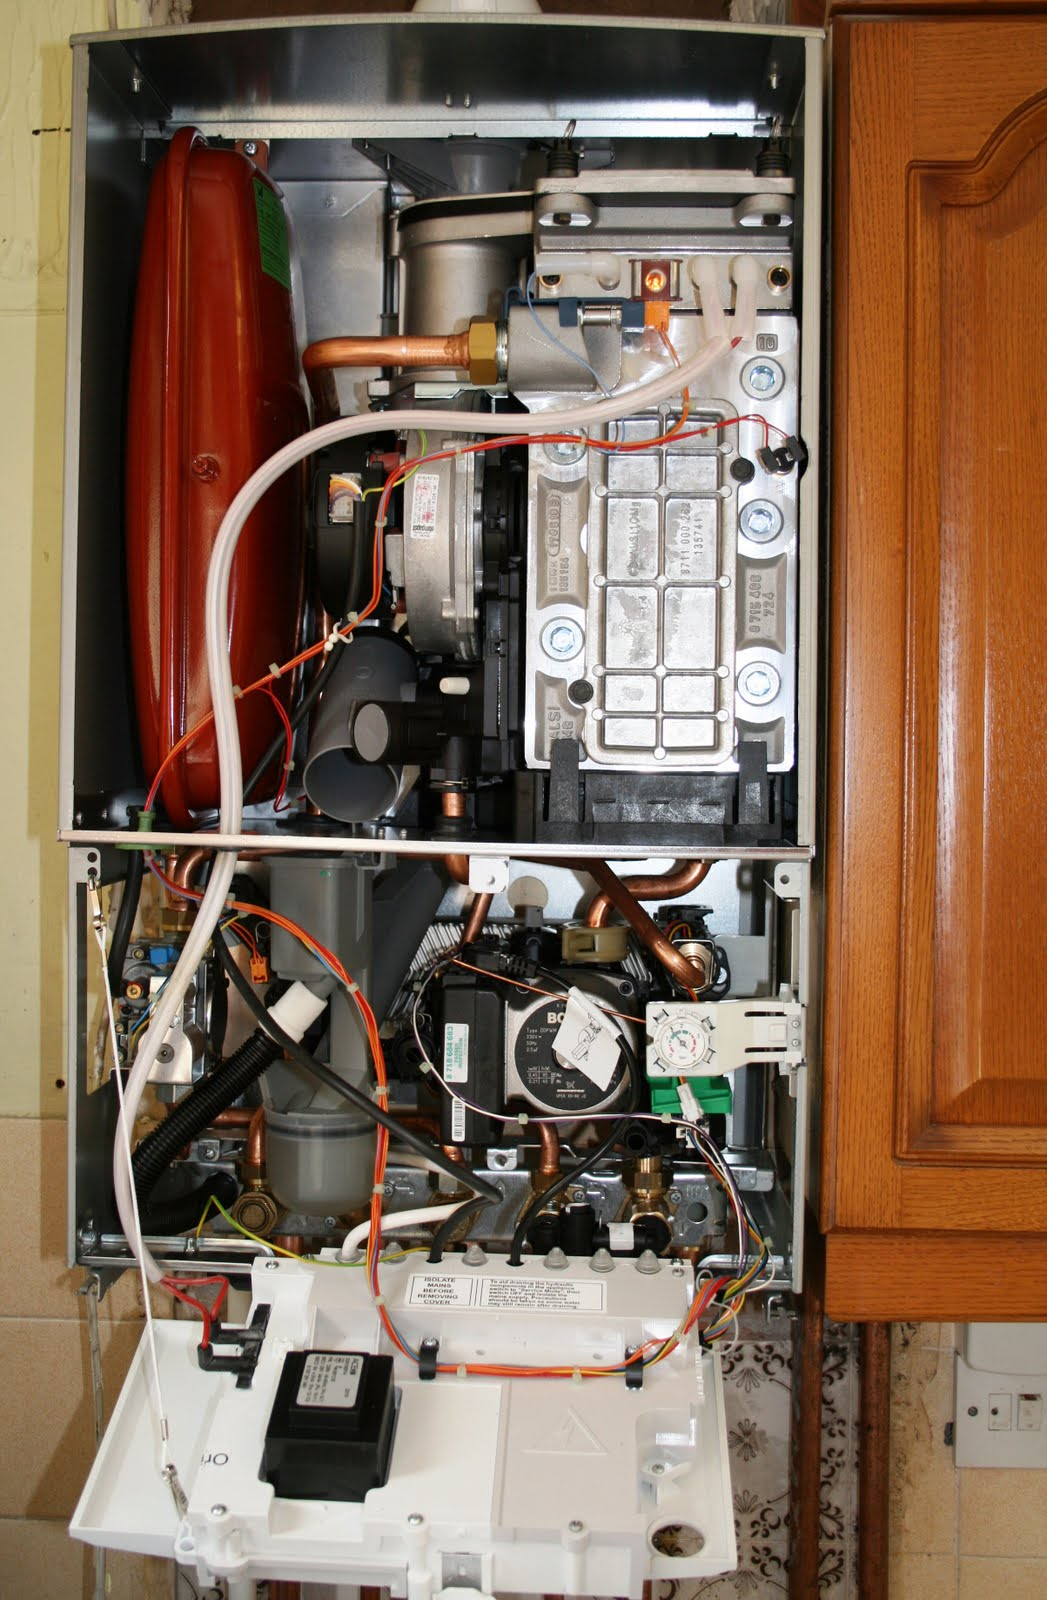 worcester bosch system boiler wiring diagram for three way light switch plannet plumbing services ltd inside the